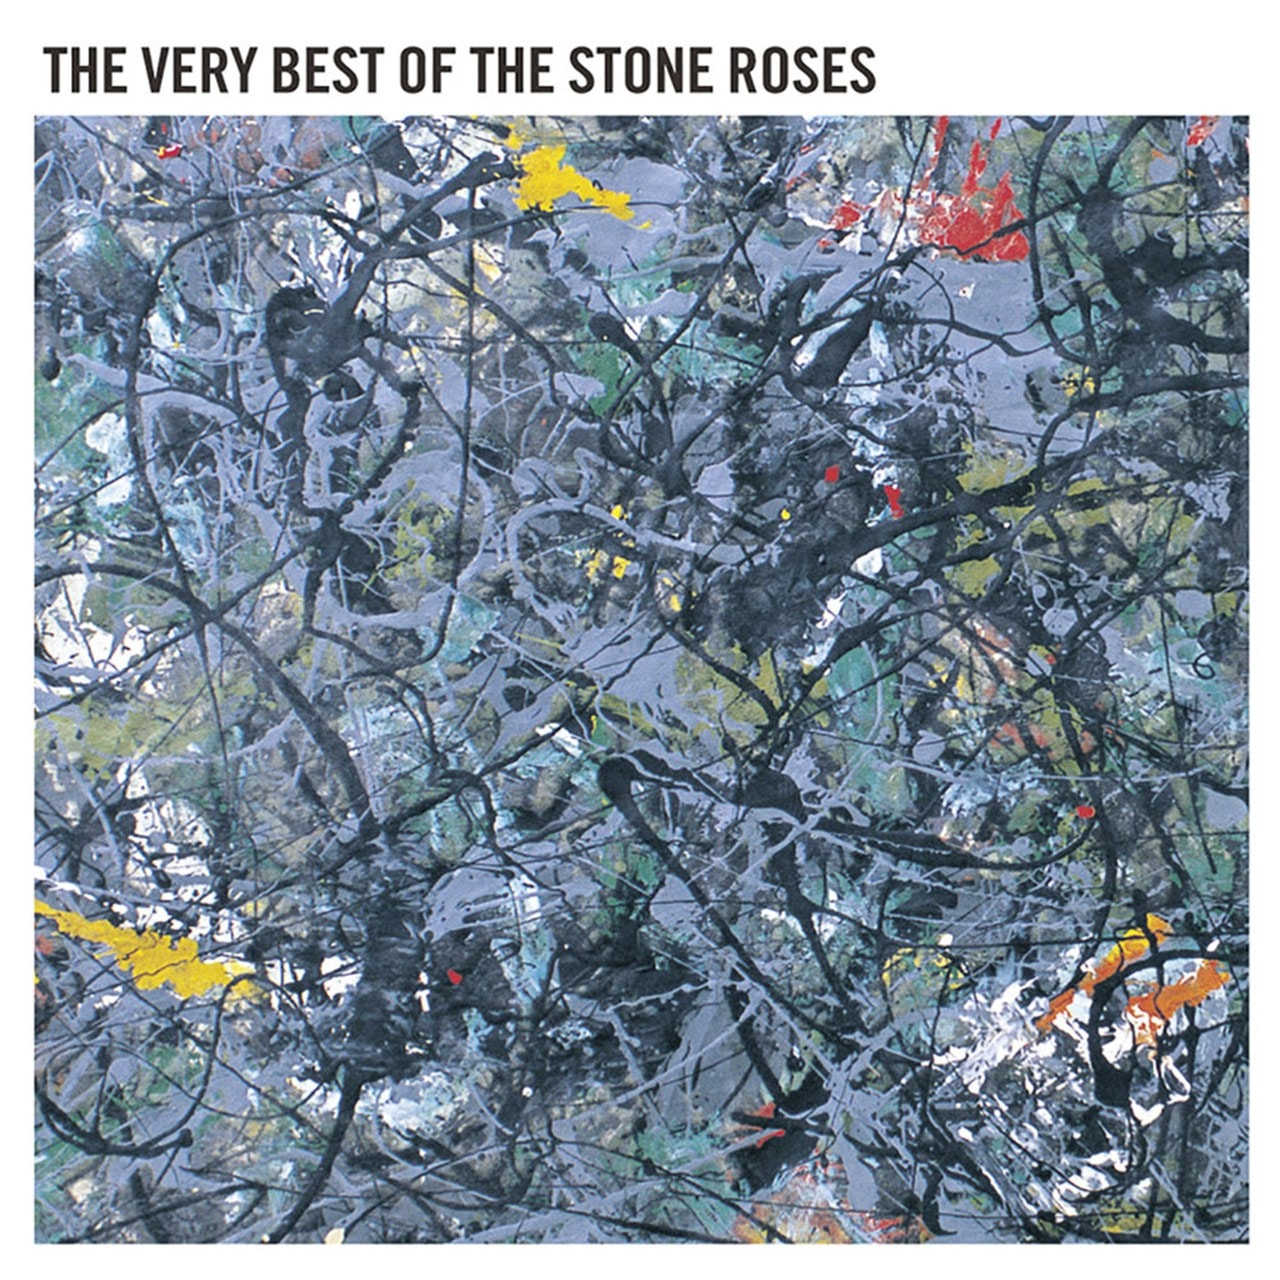 The Very Best of the Stone Roses - 1